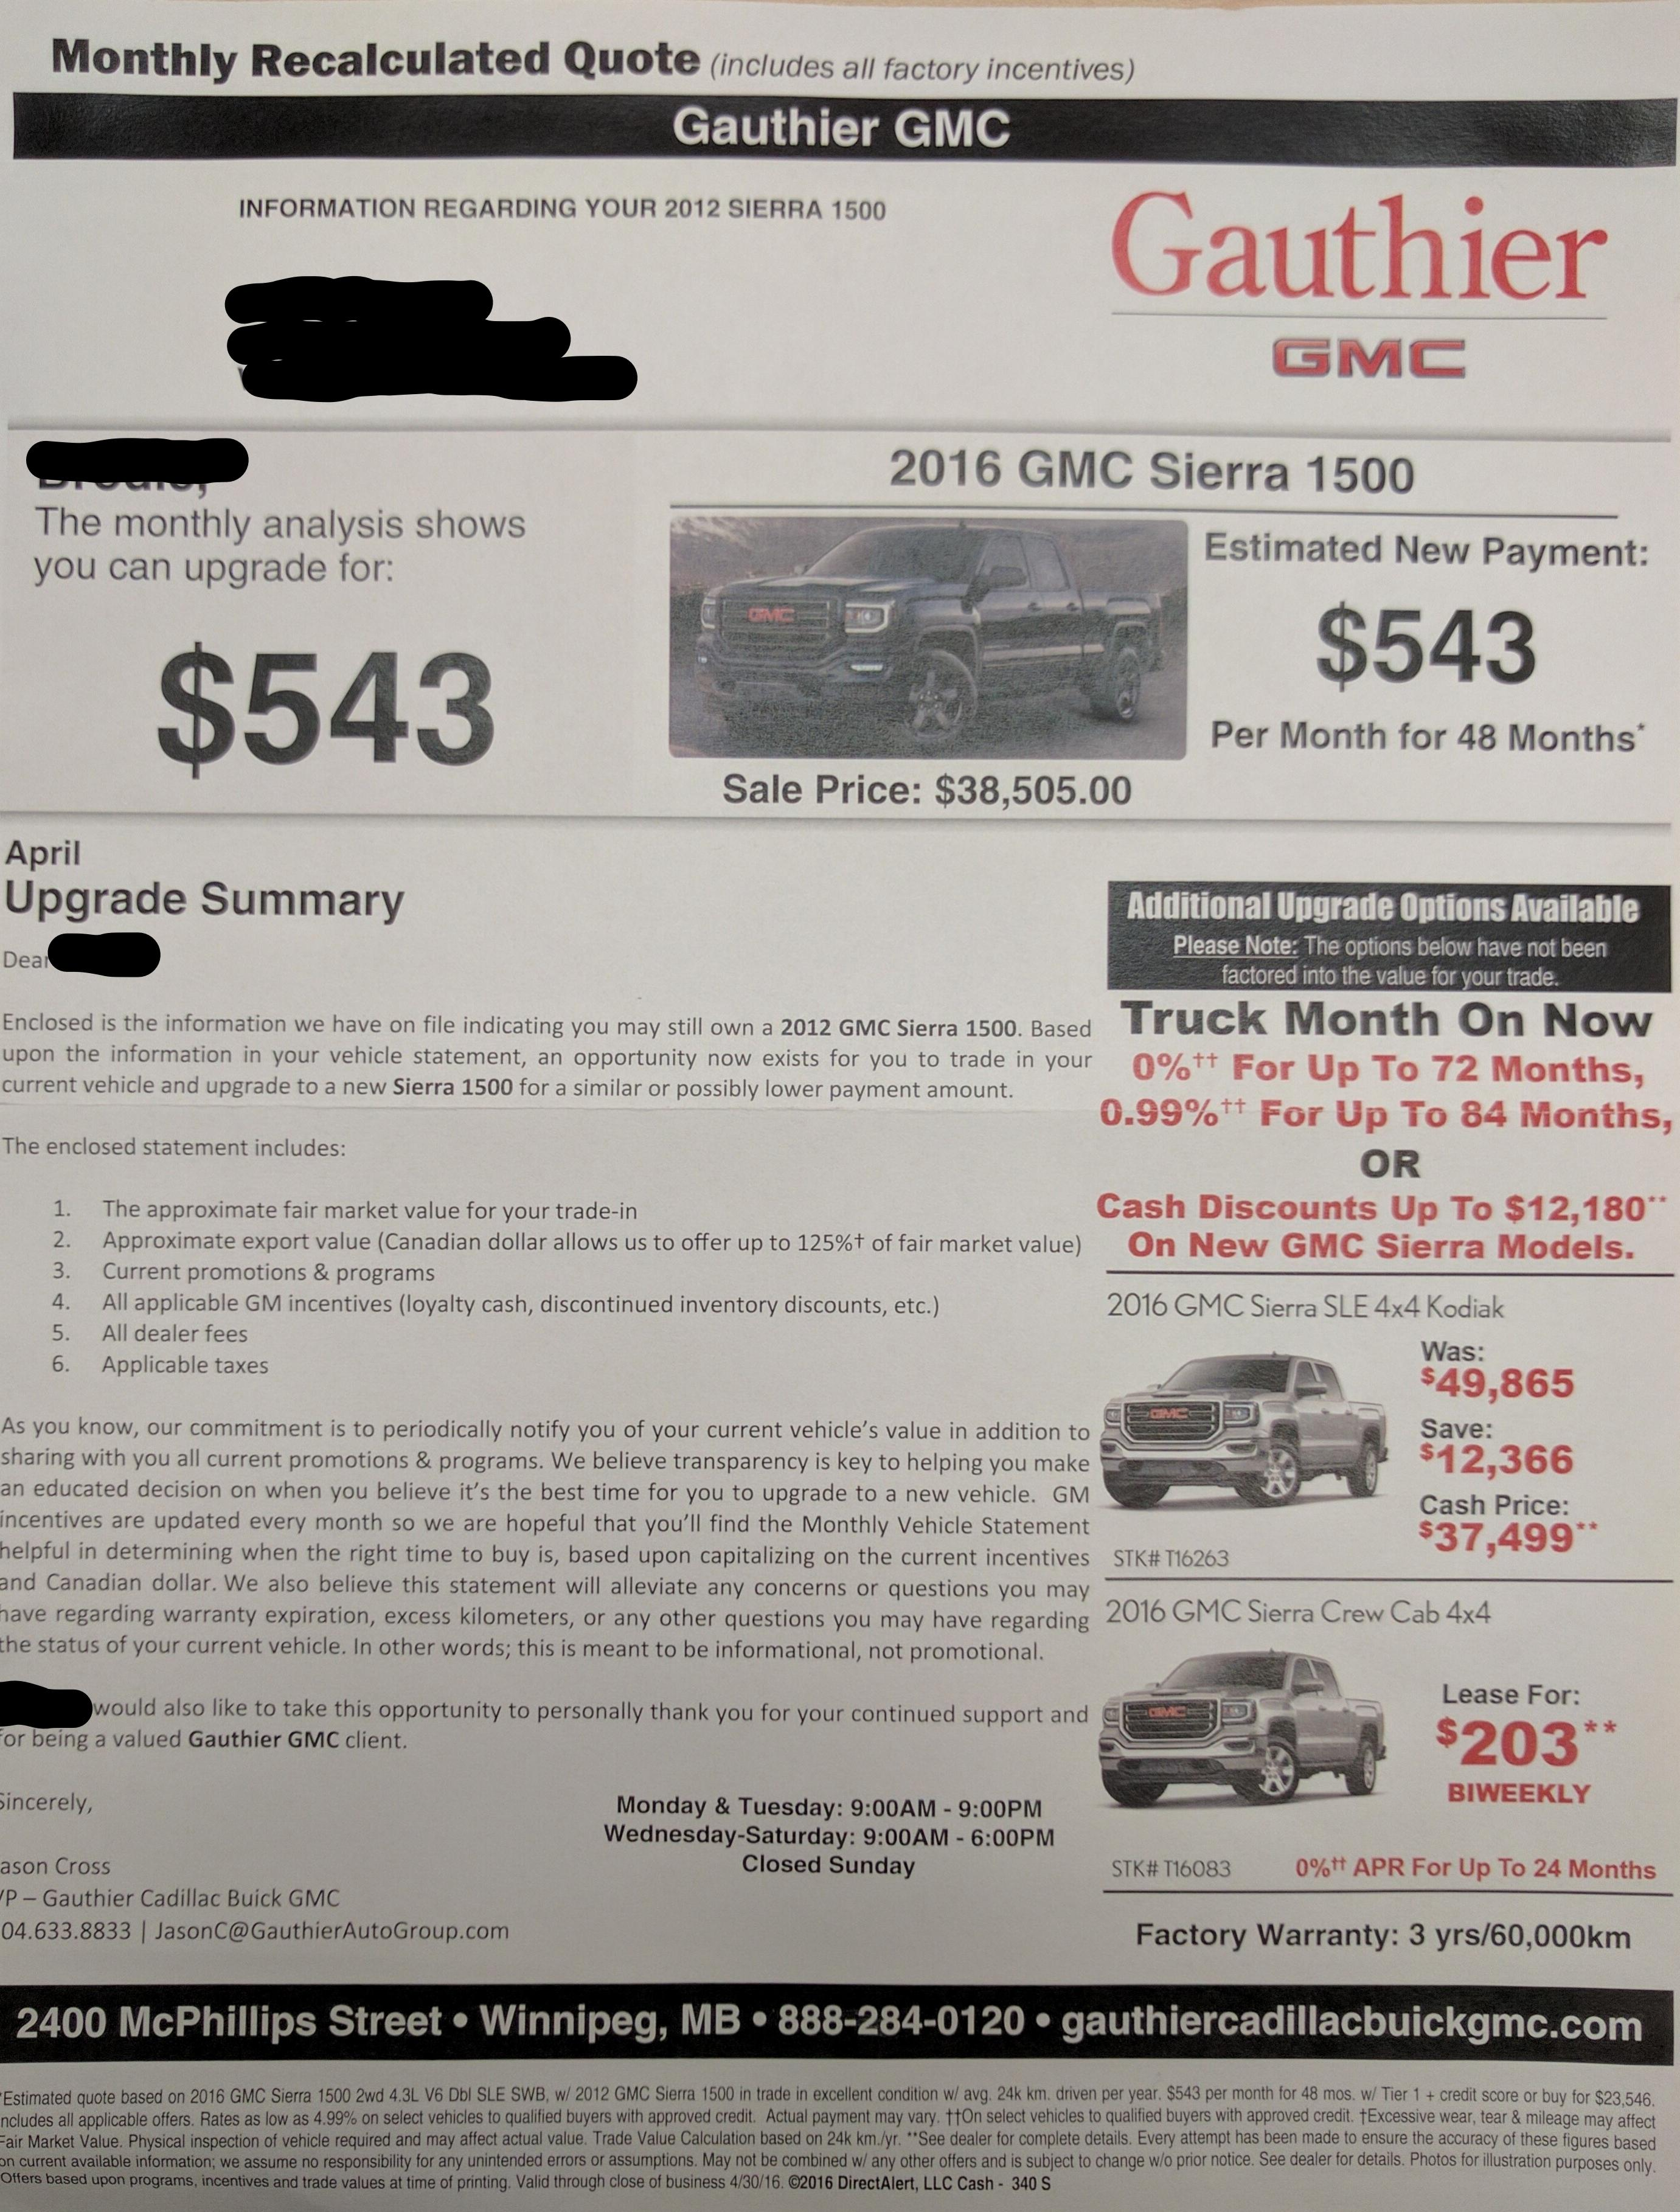 About Your Vehicles Equity Mail Piece